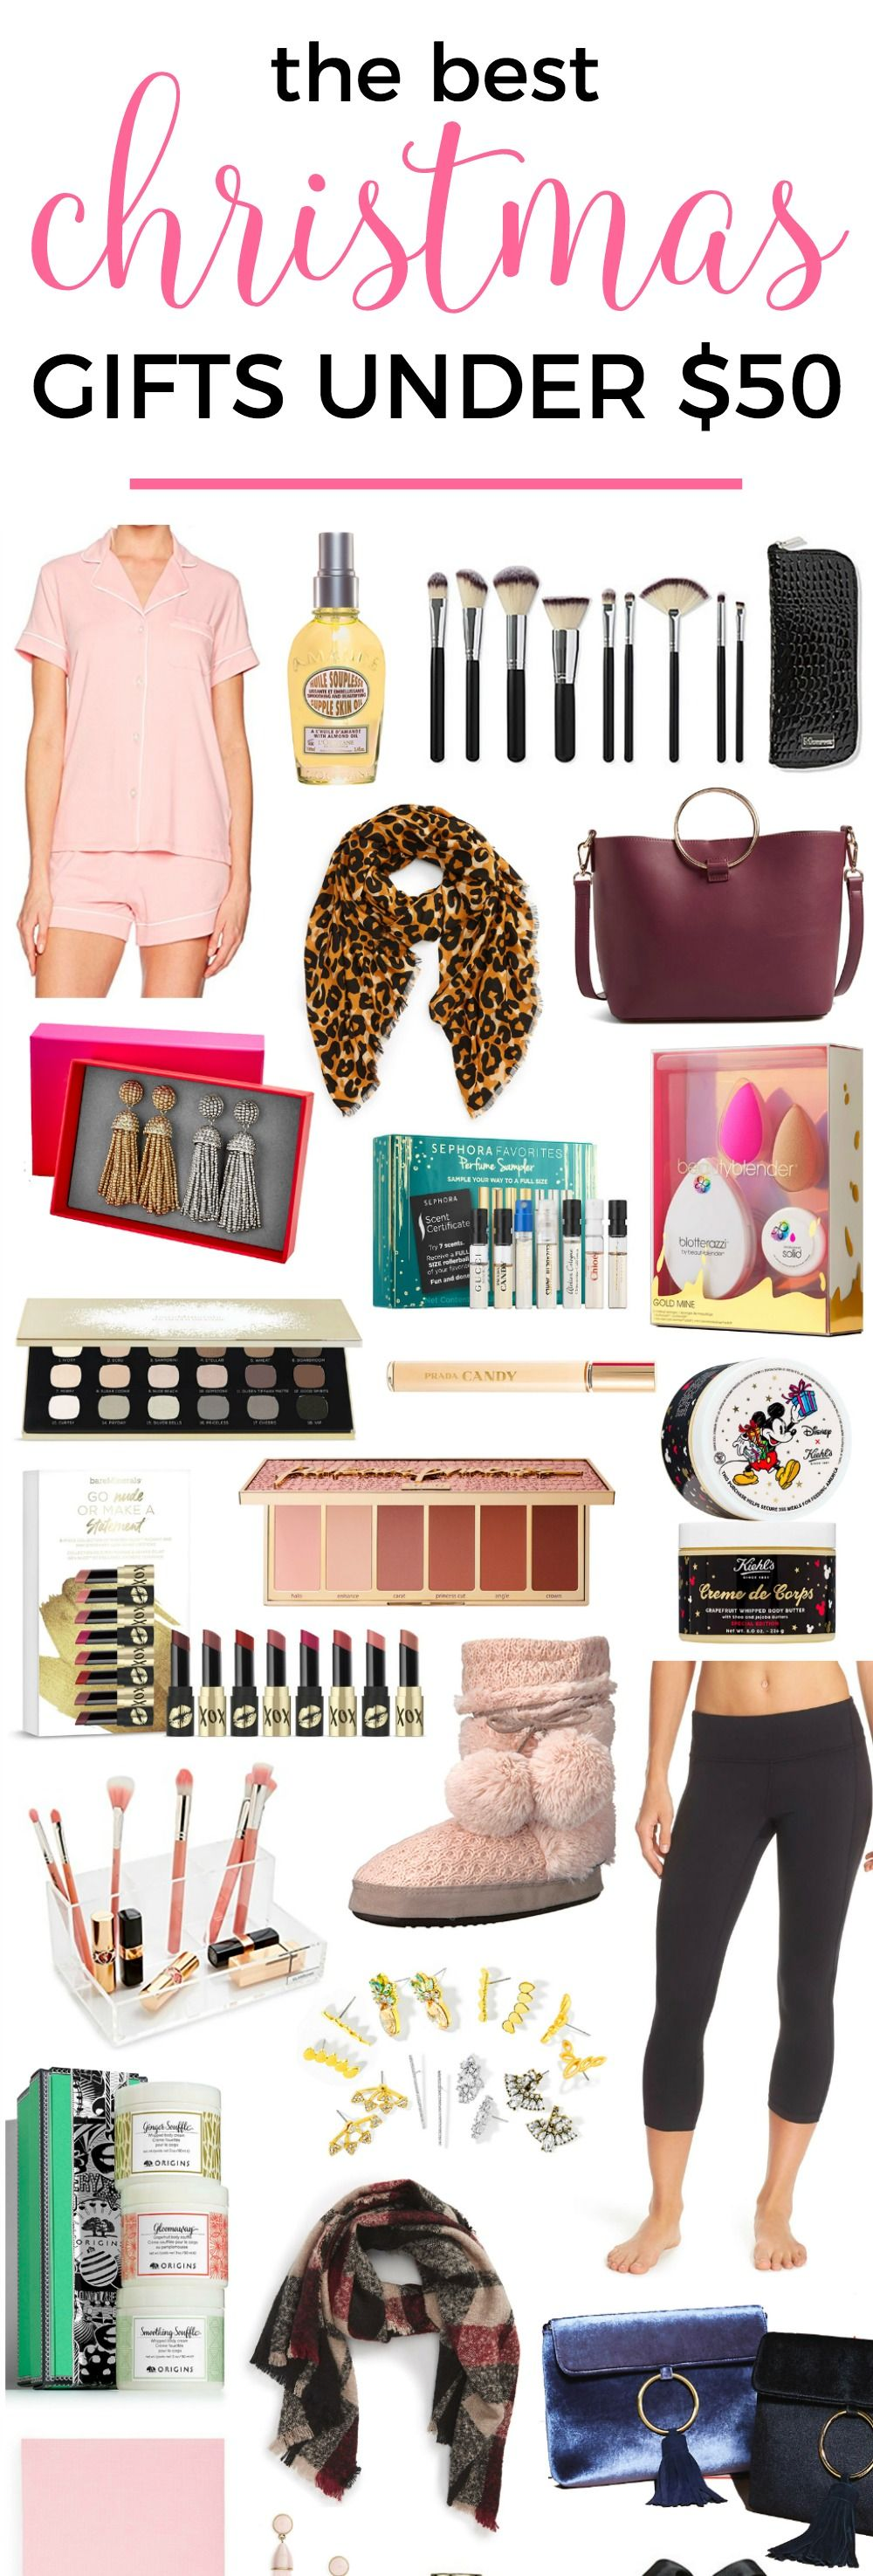 The Best Christmas Gift Ideas Under 50 She S Guaranteed To Love Every Holiday Gift Affordable Christmas Gifts Best Christmas Gifts Christmas Gifts For Women